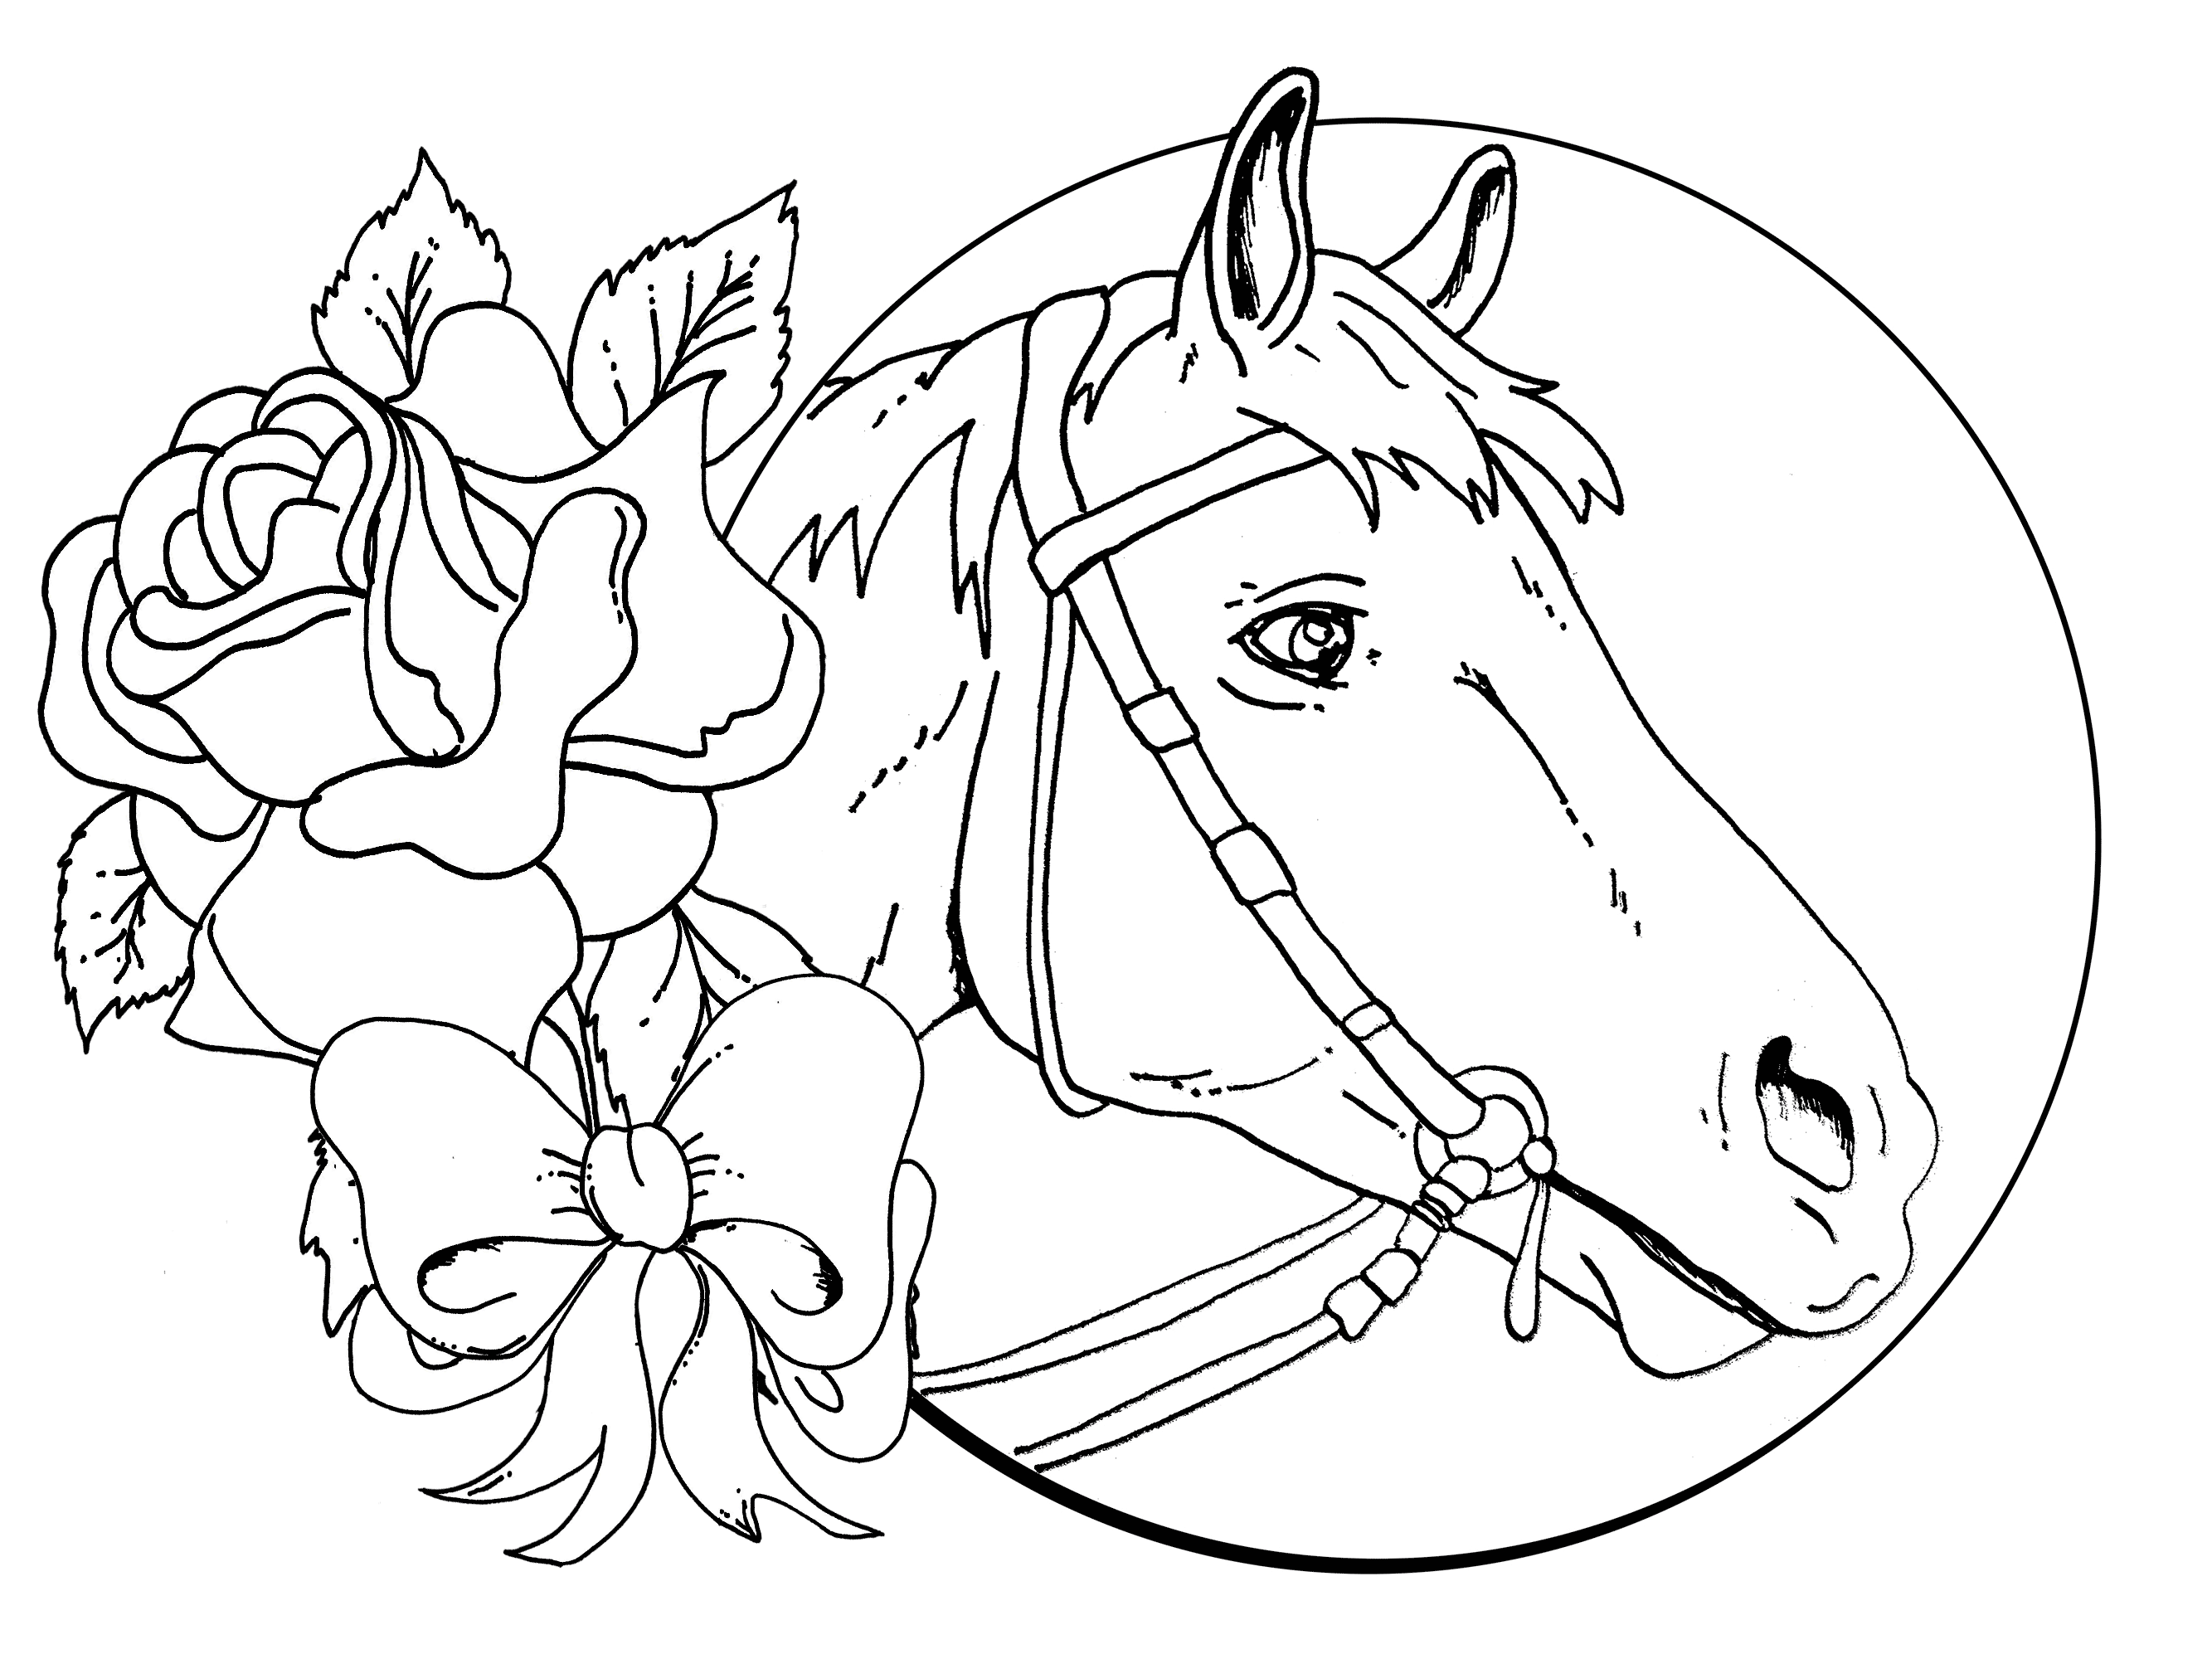 Free coloring pages that you color online - For The Kids Who Love The Strong And Fast Animal Like A Horse We Have Prepared Some Horse Colour Page It Has High Quality And Definition You Can Save And